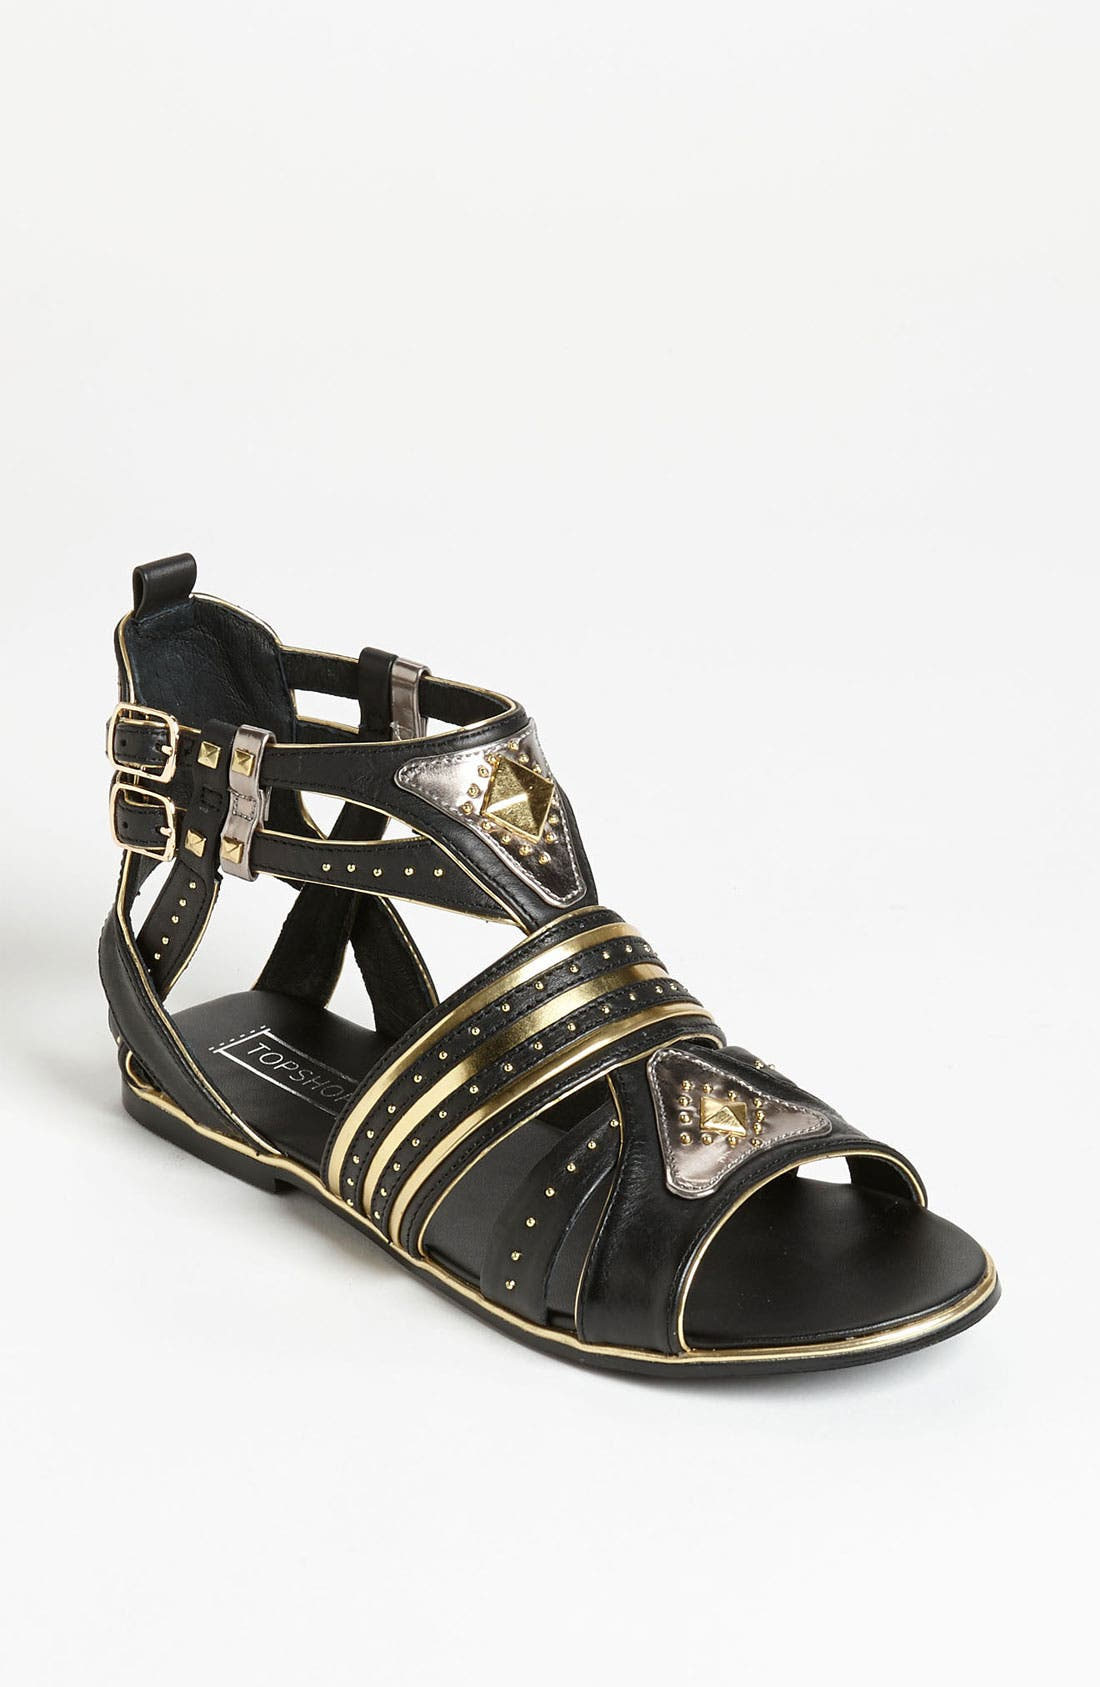 Alternate Image 1 Selected - Topshop 'Francine' Metal Gladiator Sandal